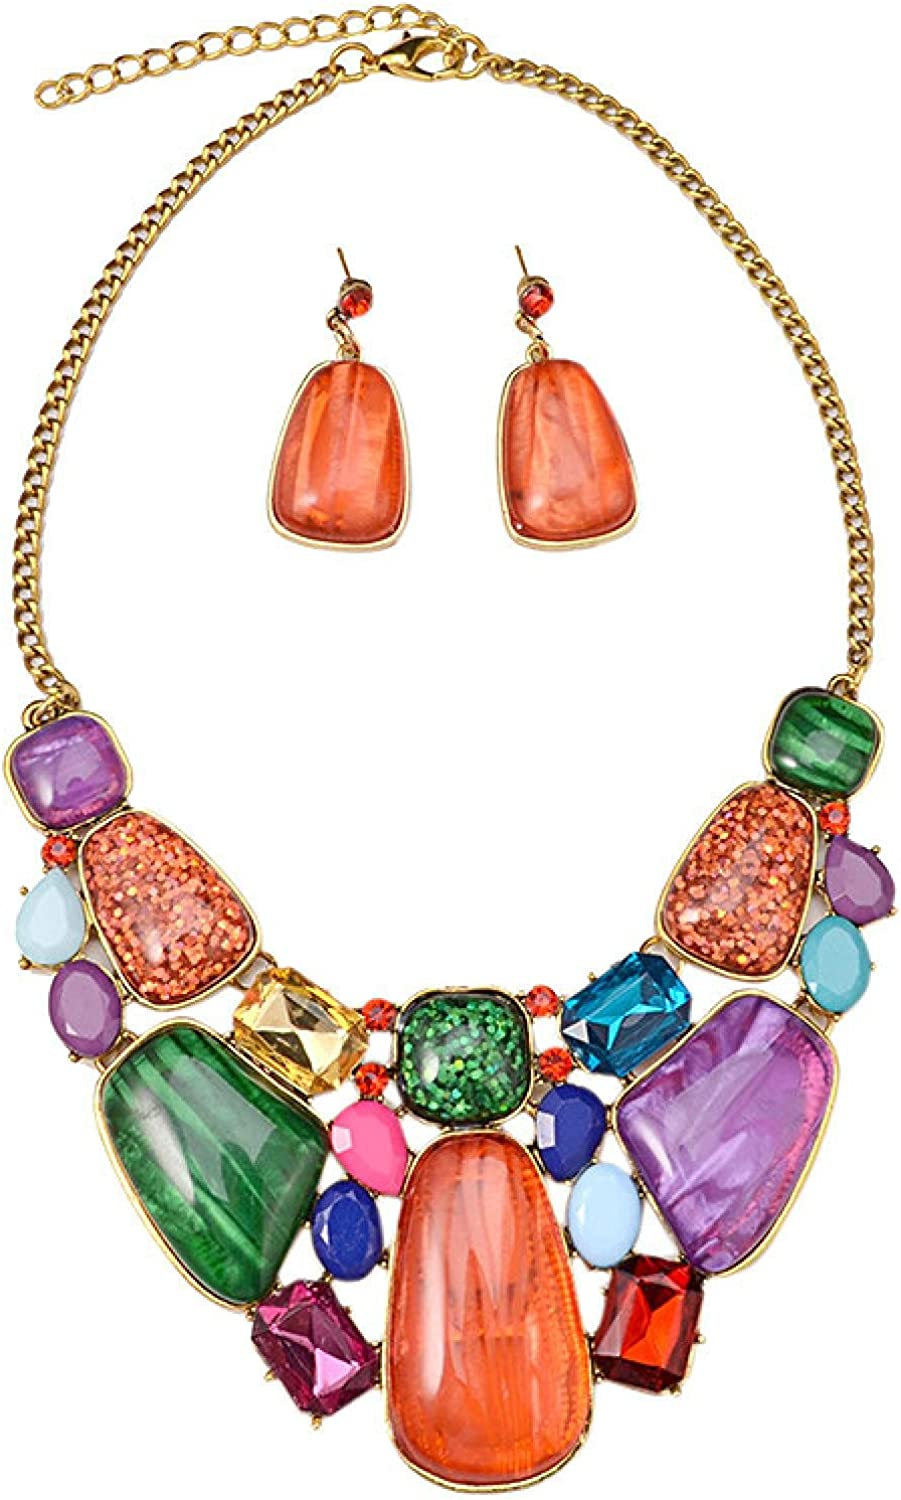 colorful gem statement necklace & pendant wedding jewelry sets vintage chokers maxi necklace collar